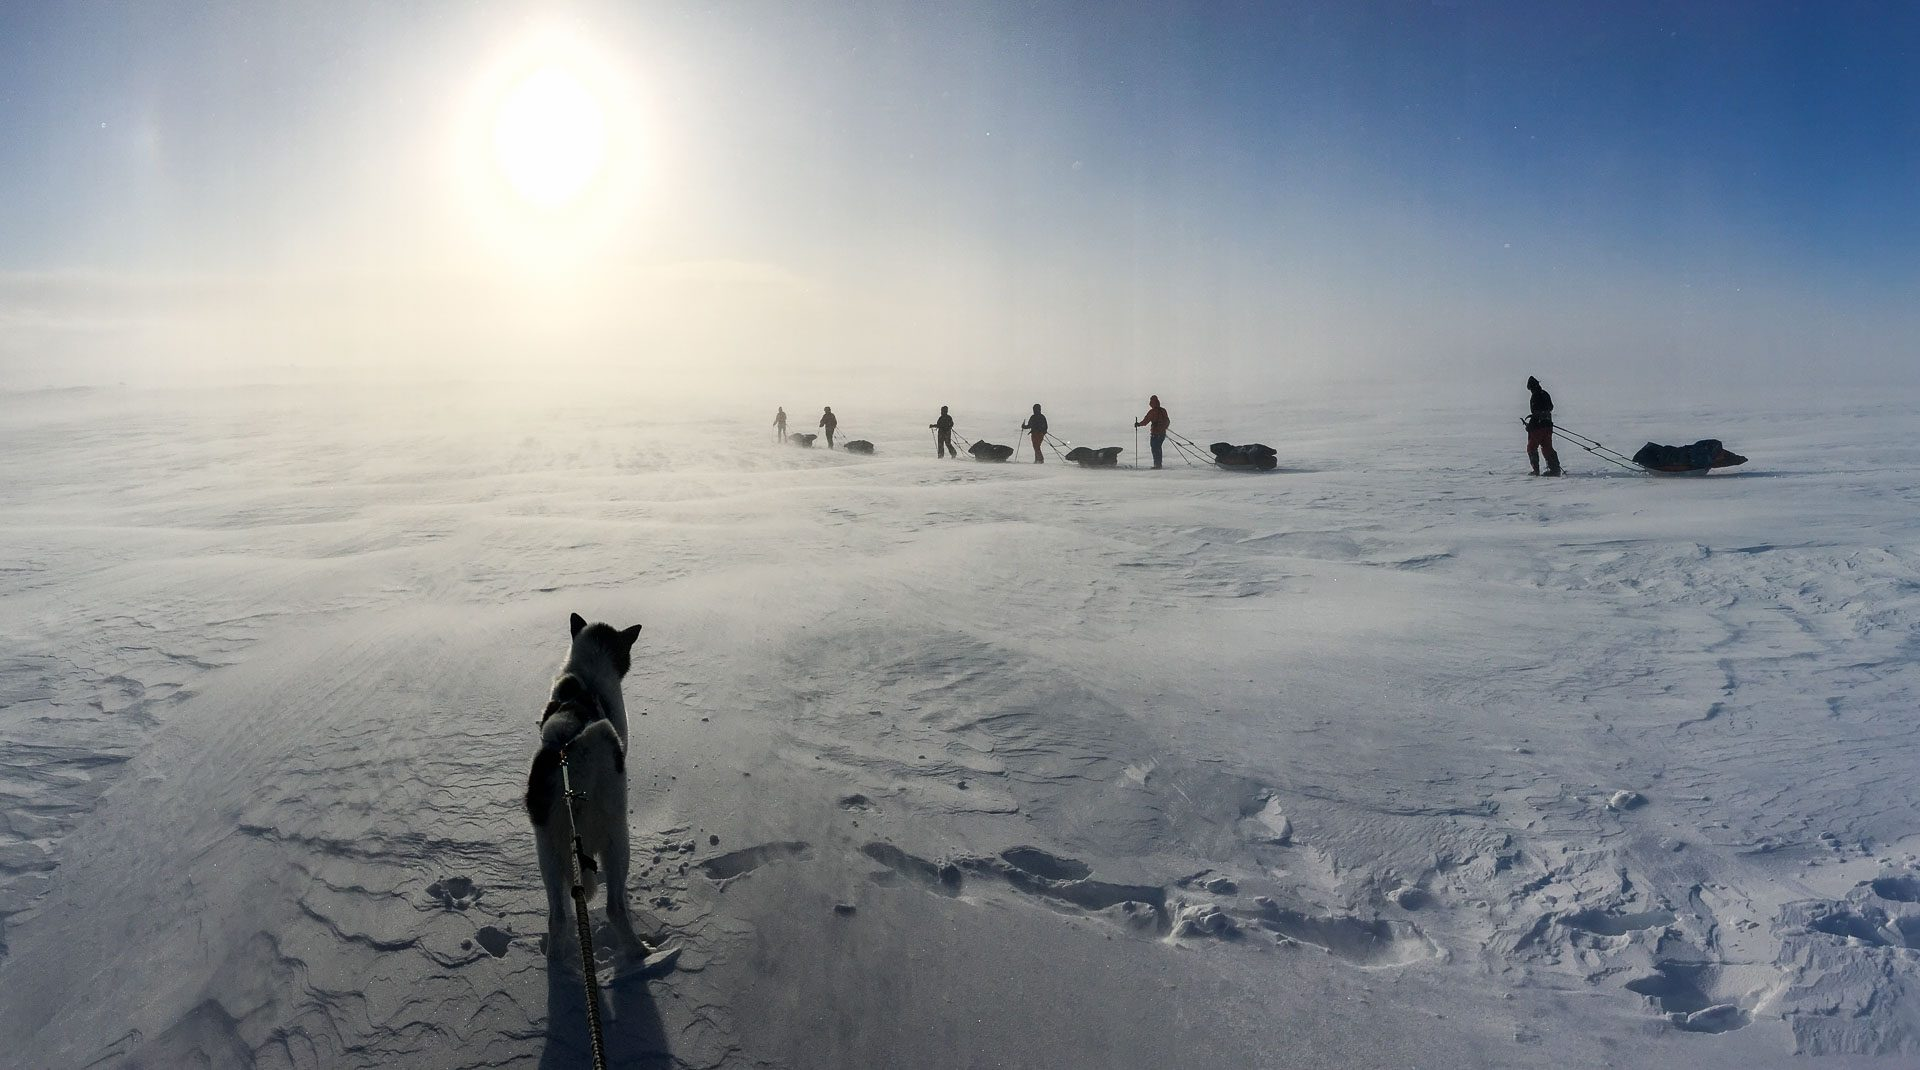 It's not cheap, but is this one of the most accessible polar adventures around?